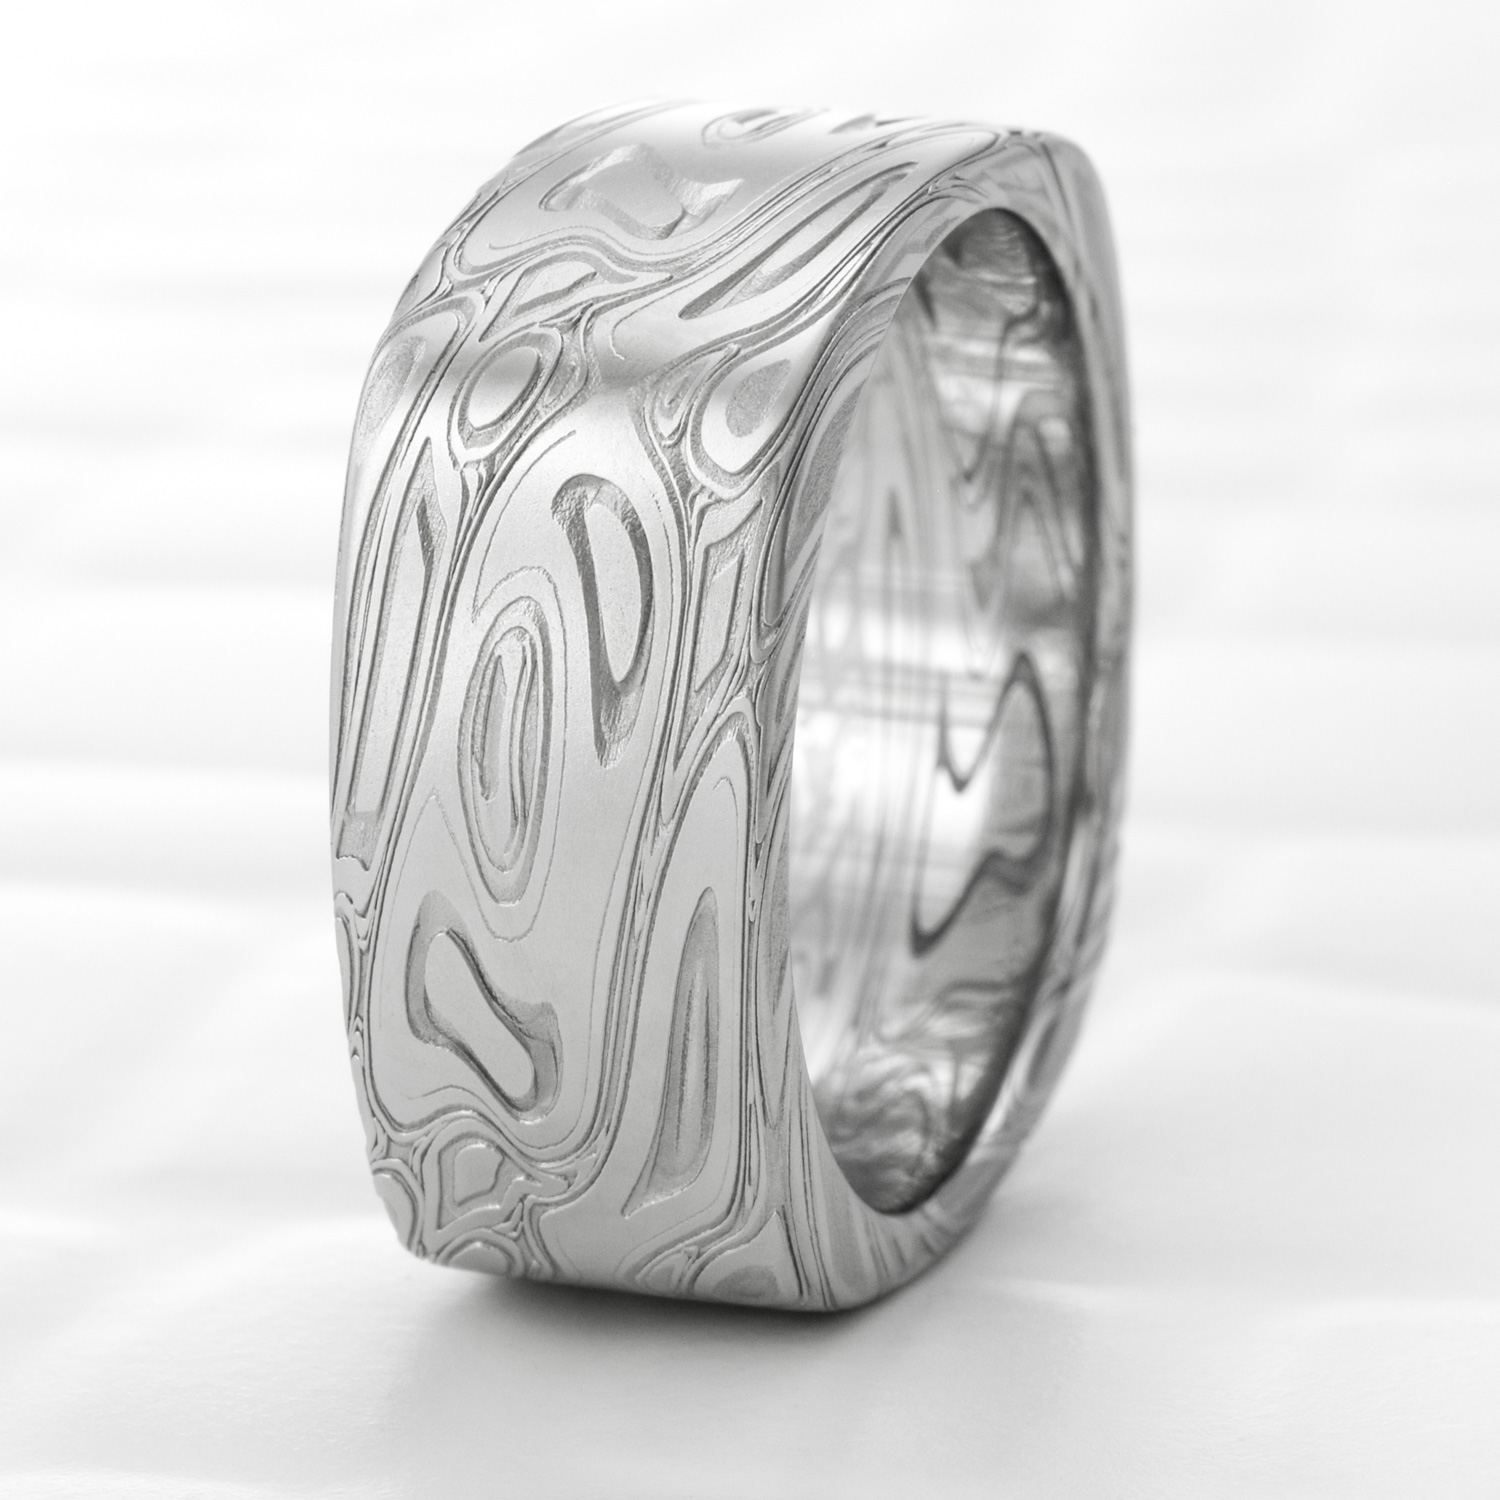 Damascus Steel Square Ring Hand Crafted | TWISTED BURL — Steven Jacob